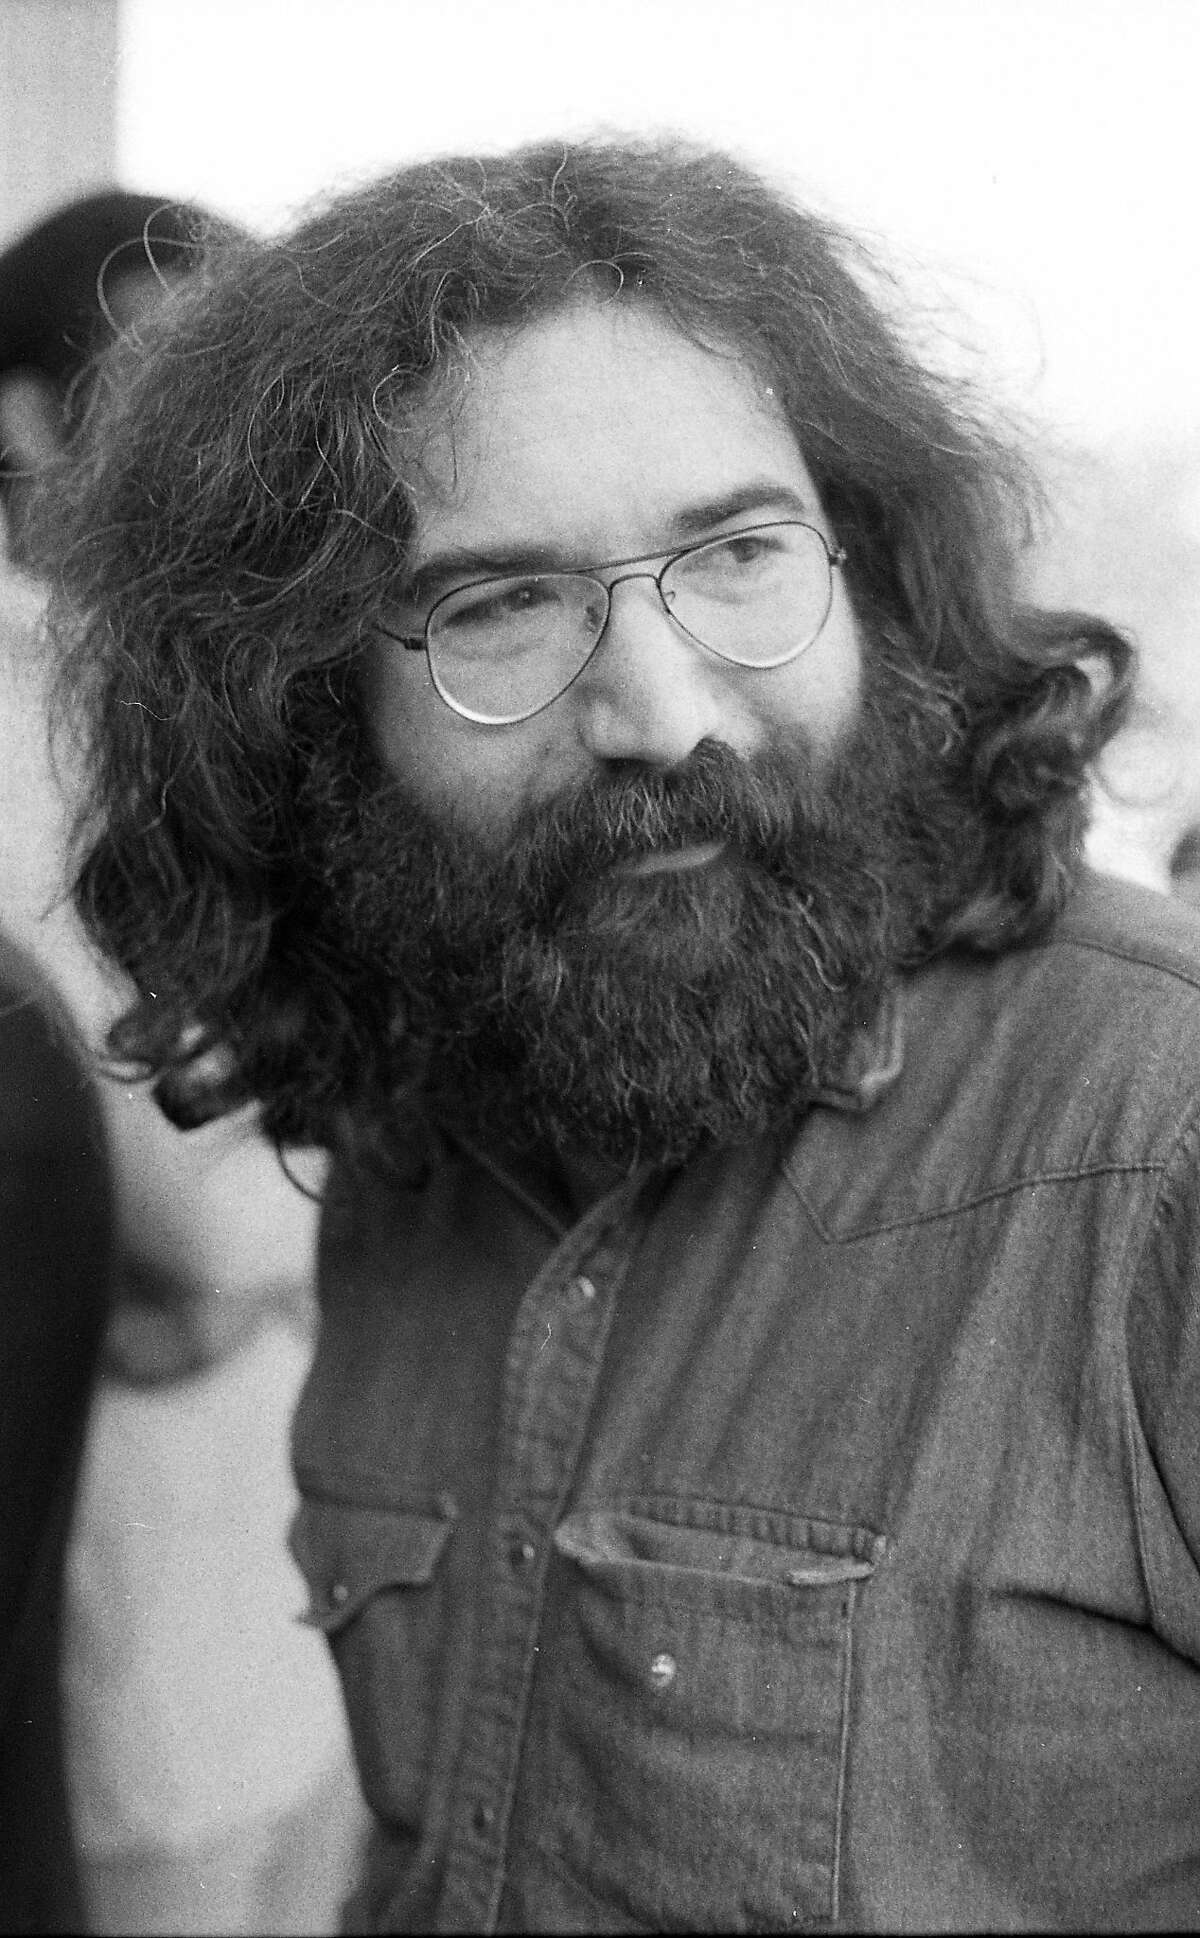 """Jerry Garcia of the Grateful Dead at the March 12, 1973 funeral of Ron """"Pig Pen"""" McKernan, singer and drummer with the Dead."""